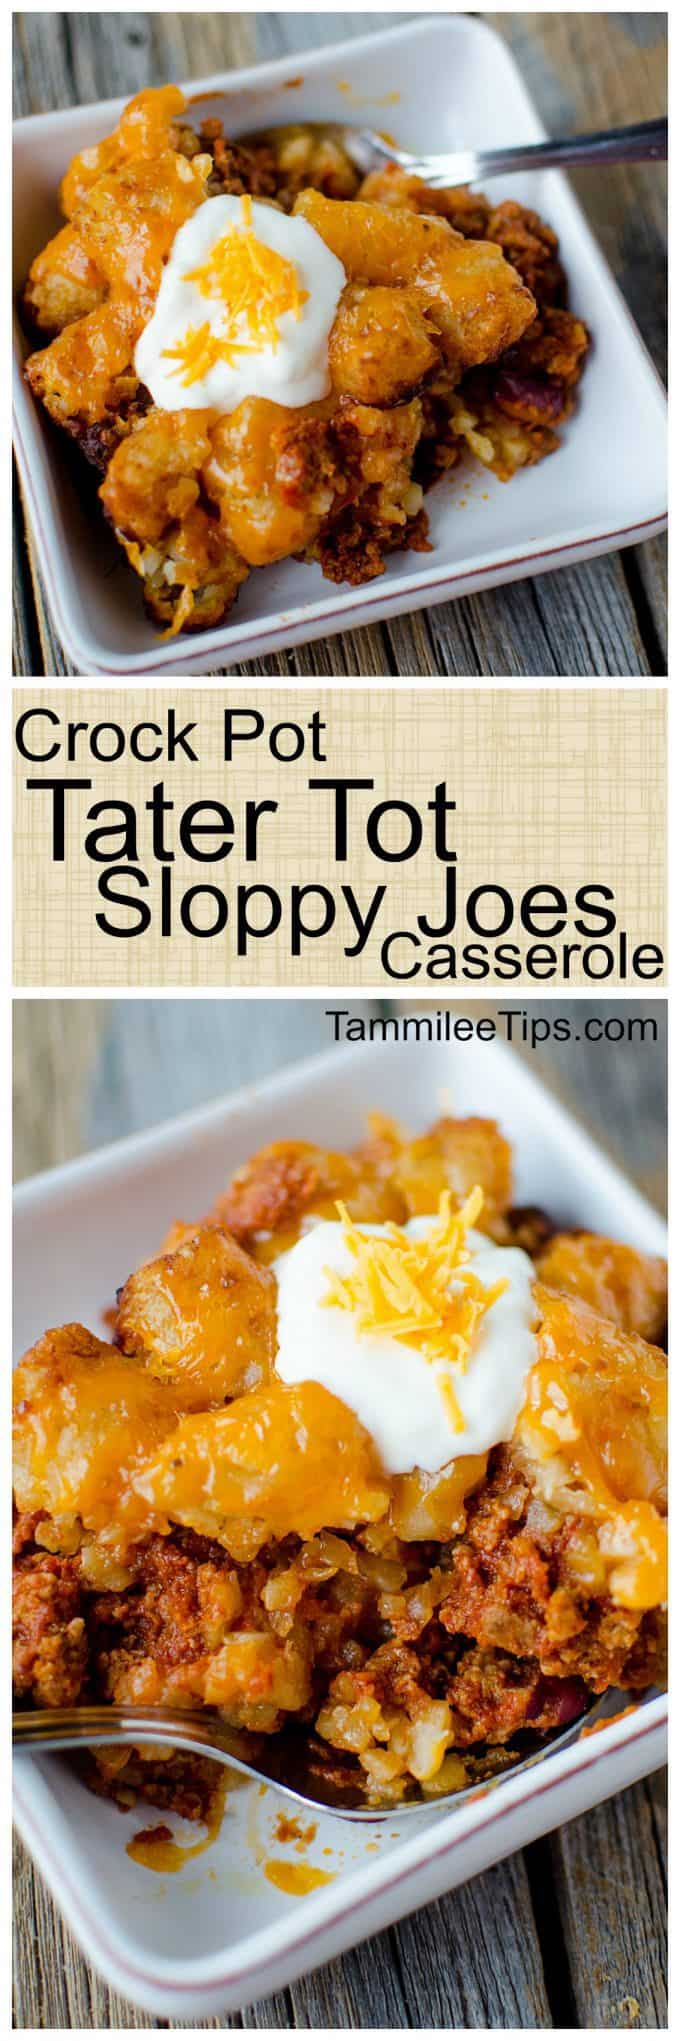 Super easy to make Crock Pot Tater Tot Sloppy Joes Casserole Recipe. Made with ground beef the entire family will love this slow cooker recipe. The crockpot does all the work and you have a great family meal! #crockpot #slowcooker #recipe